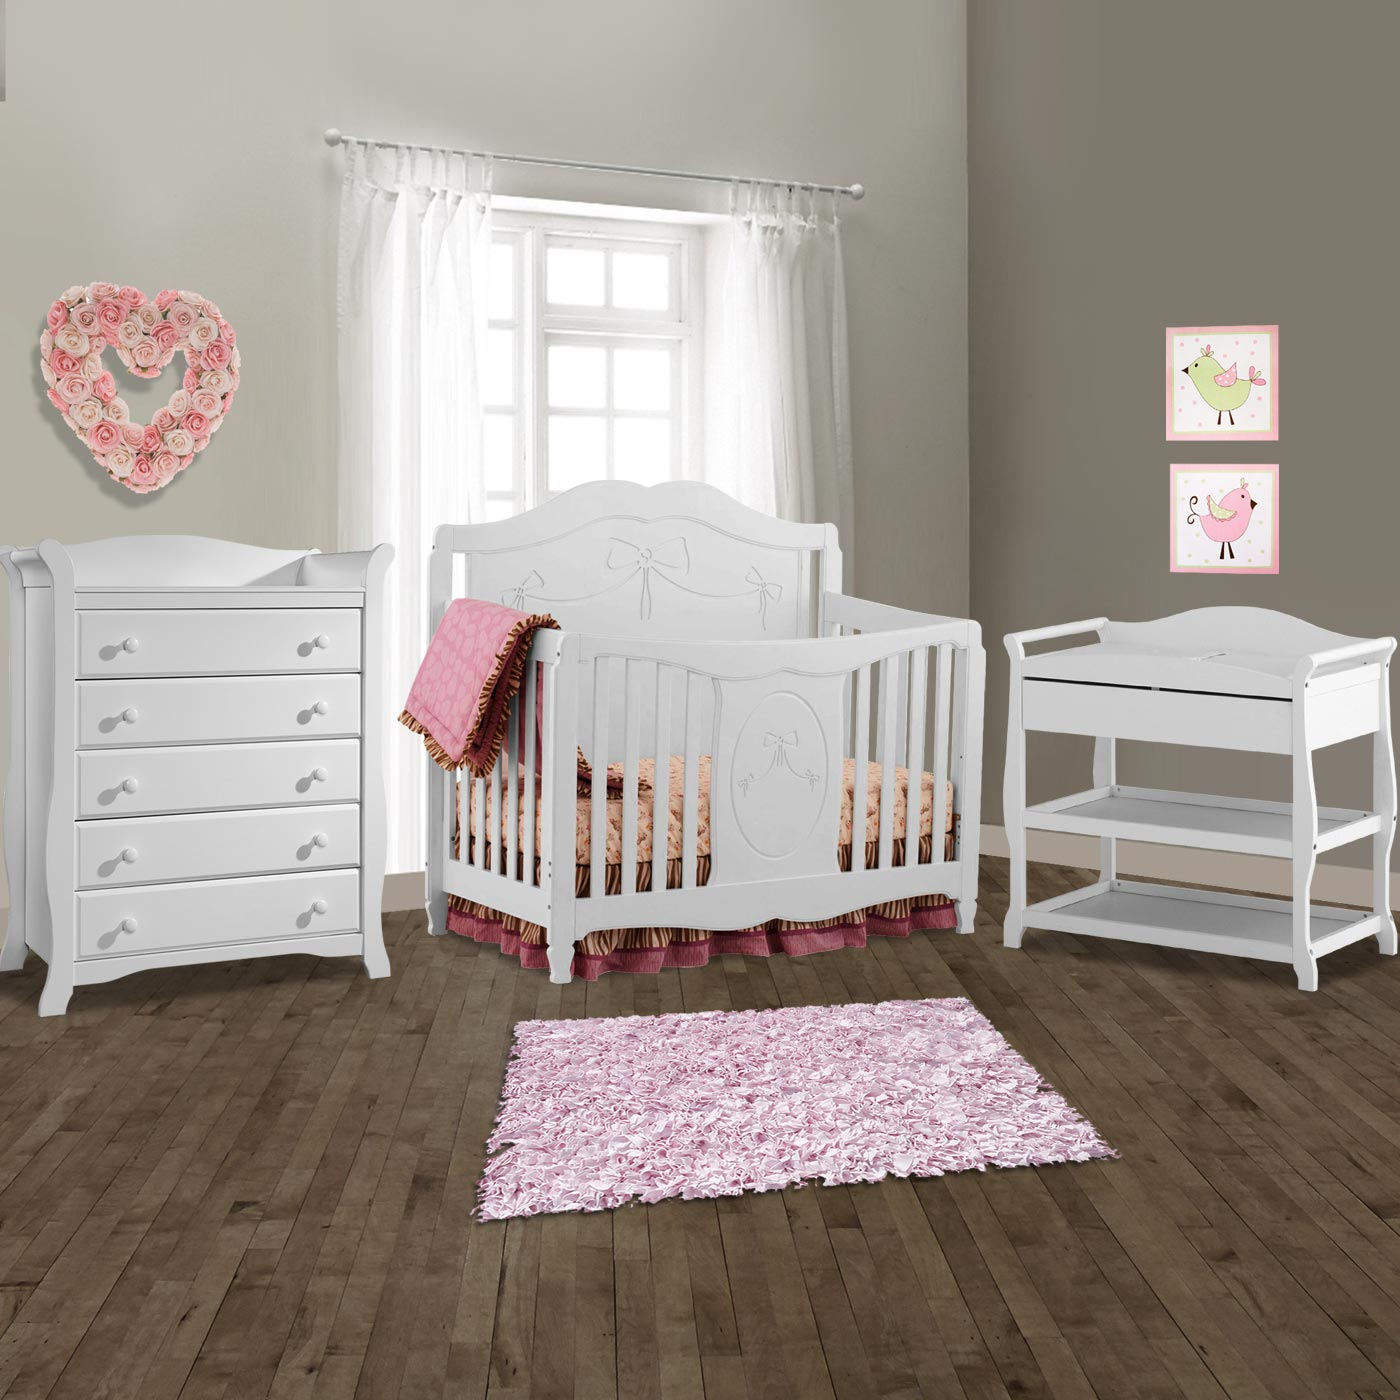 Crib dresser changing table sets bestdressers 2017 Baby crib with changing table